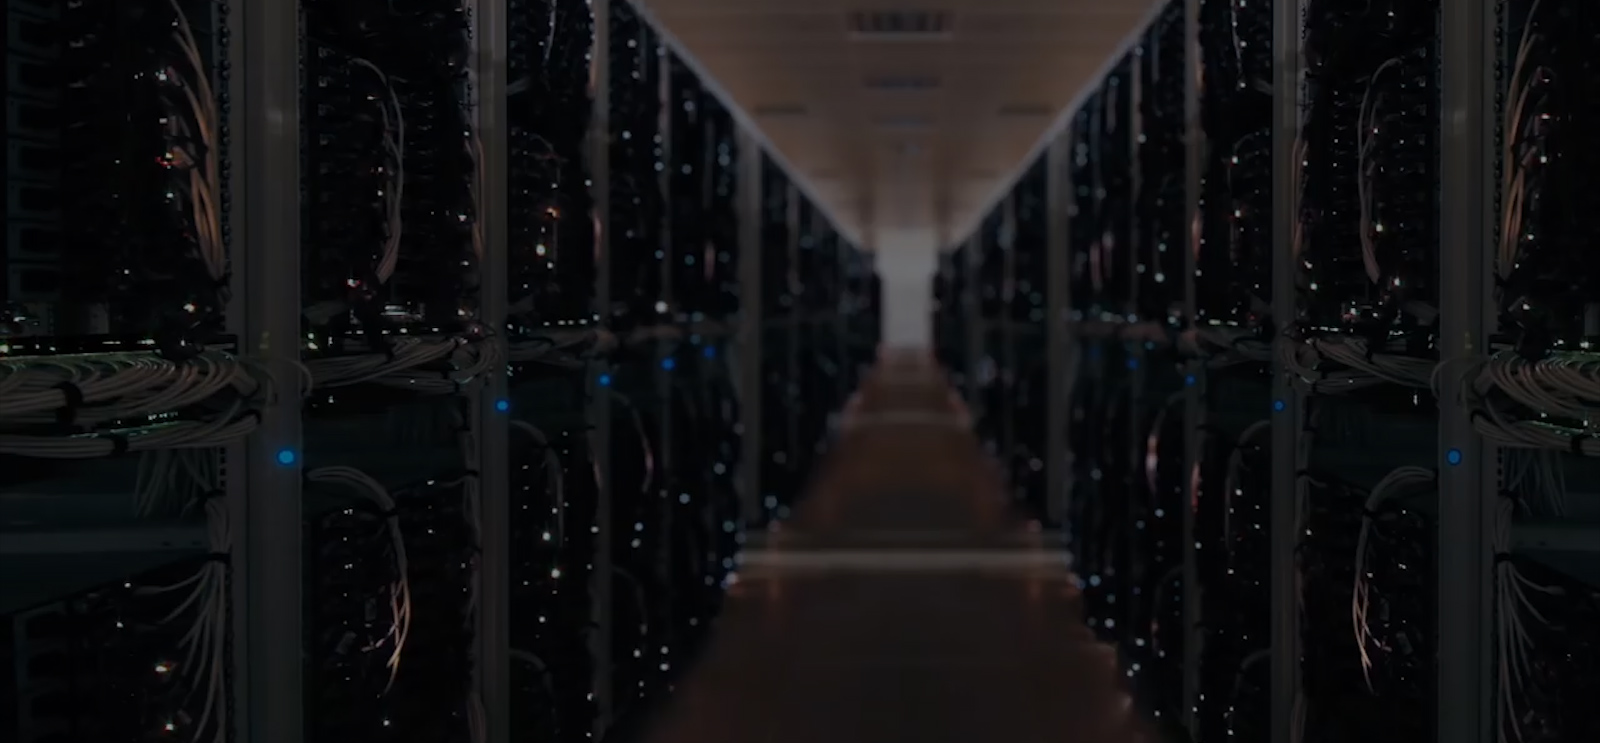 Redefining Our Relationship with Information - Bell Labs